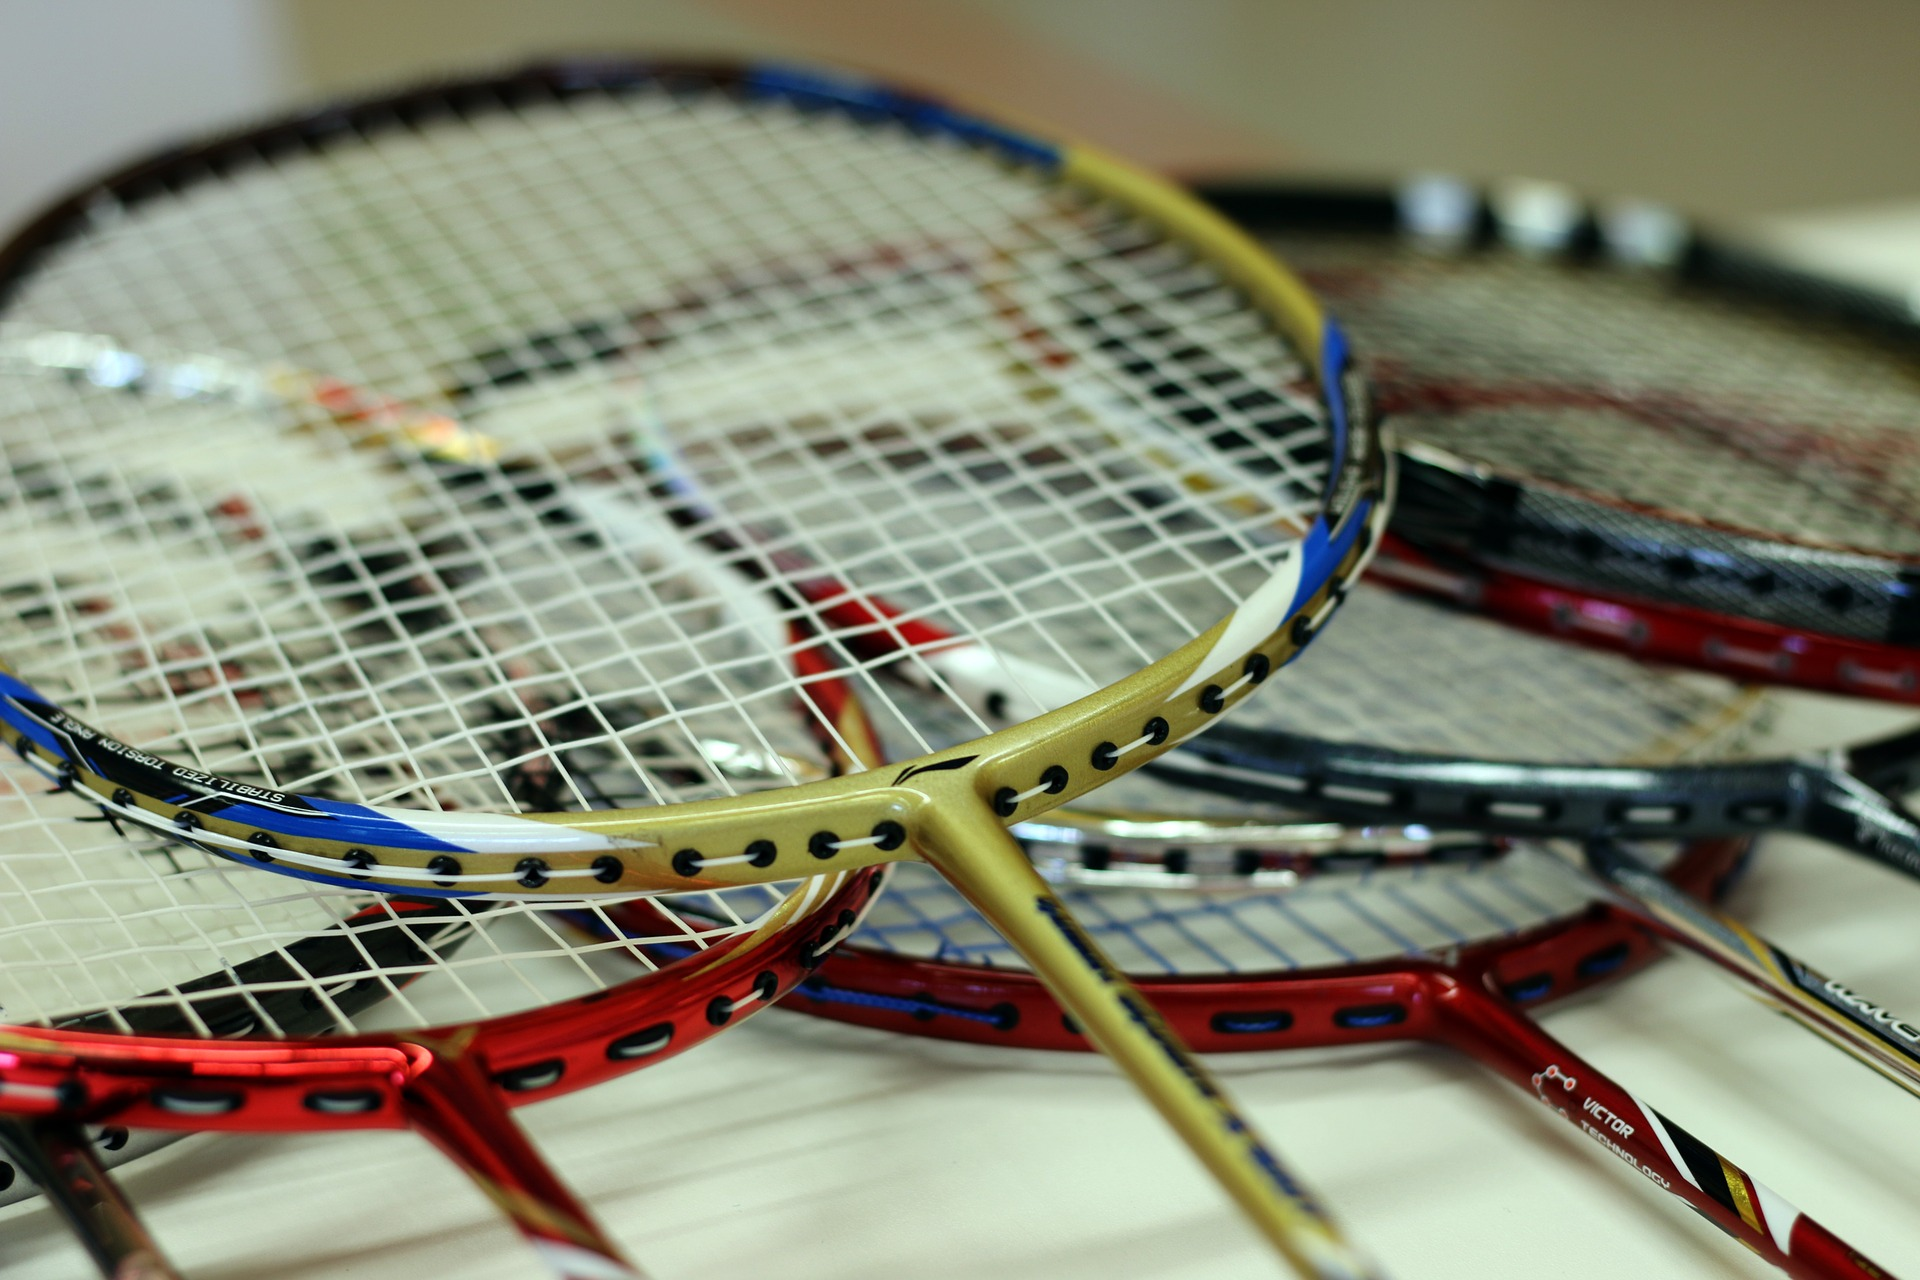 Buy badminton equipment